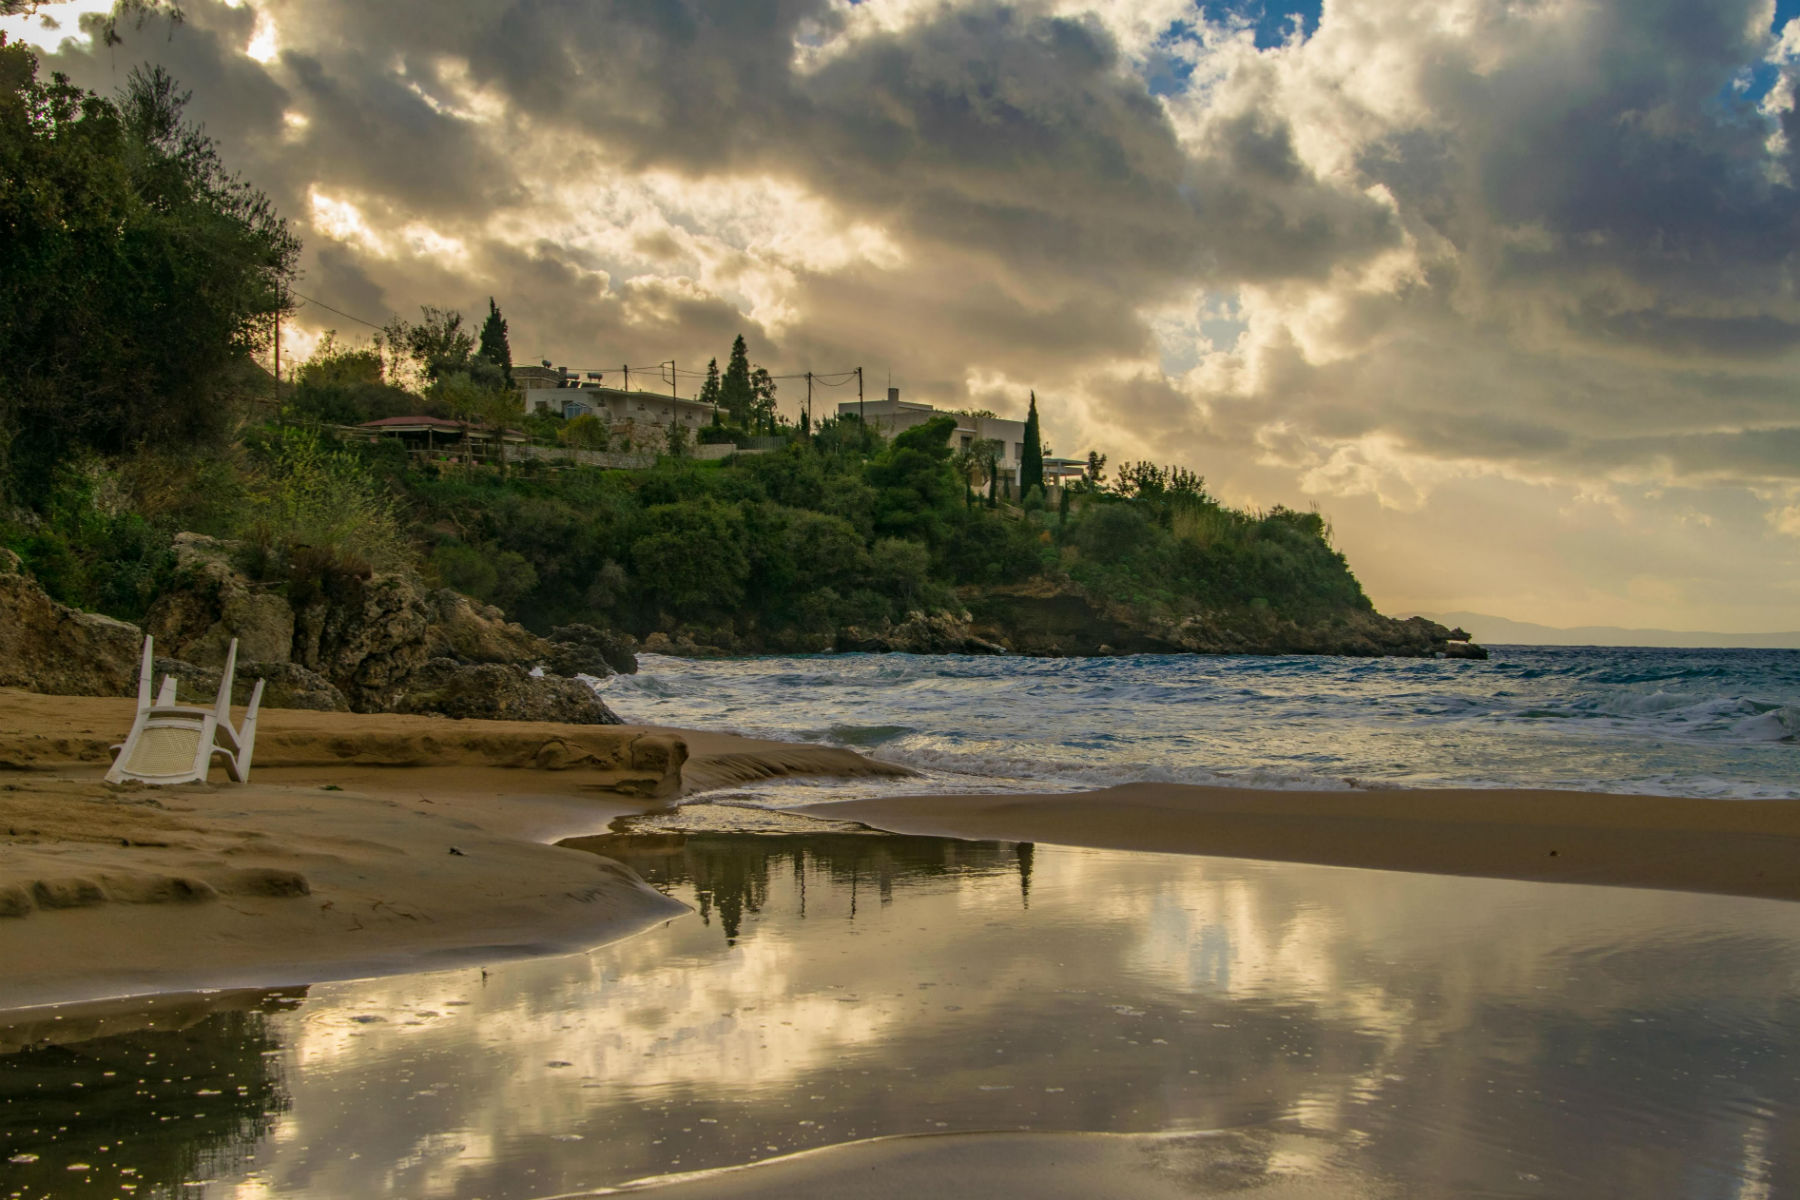 Bad weather in Greece? Paradise for photographers